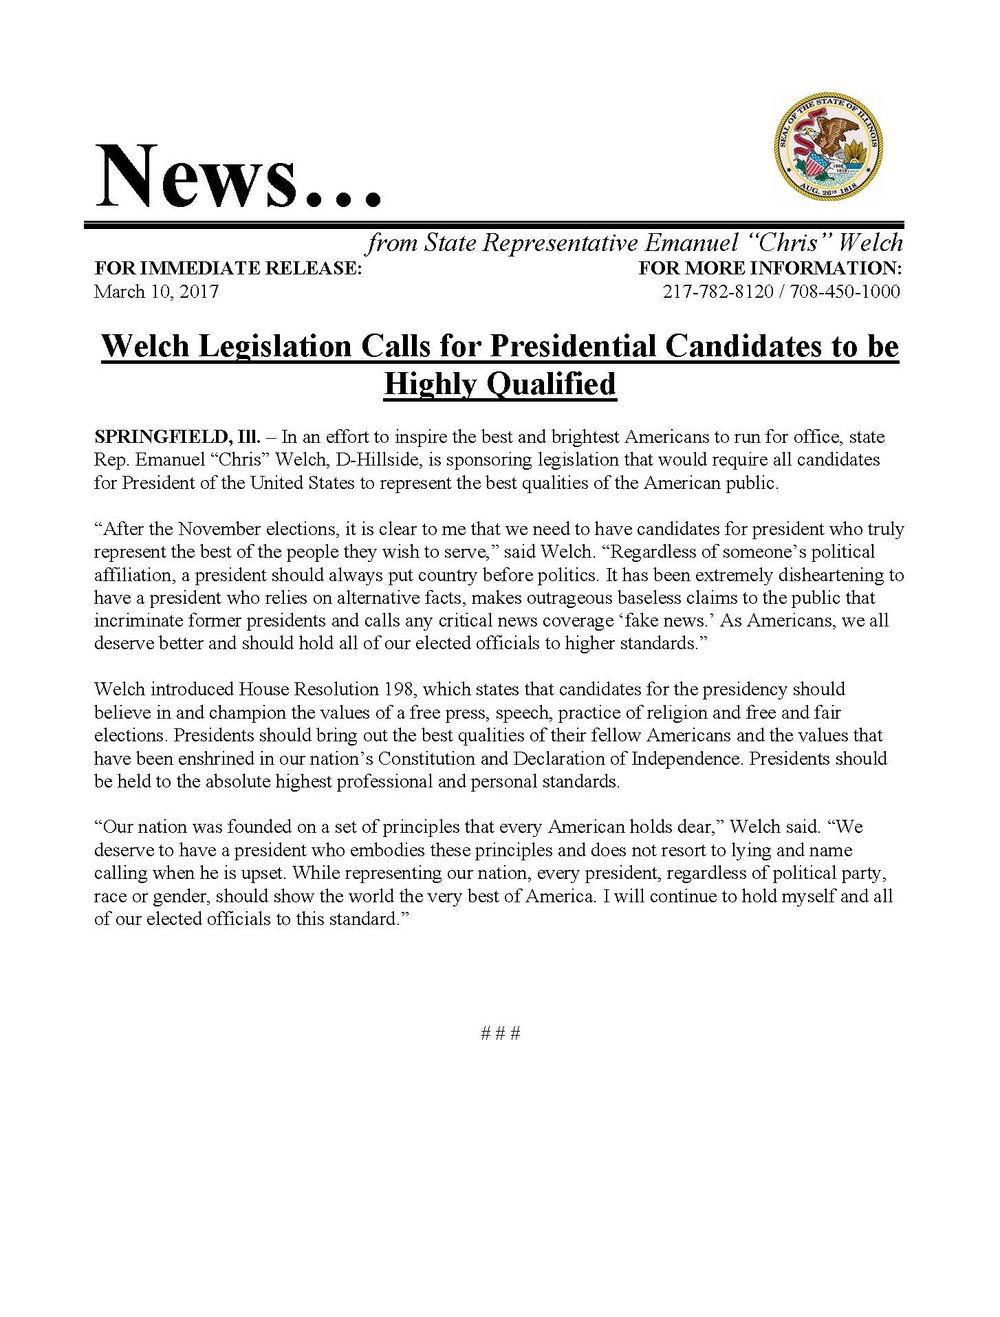 Welch Legislation Calls for Presidential Candidates to be Highly Qualified  (March 10, 2017)